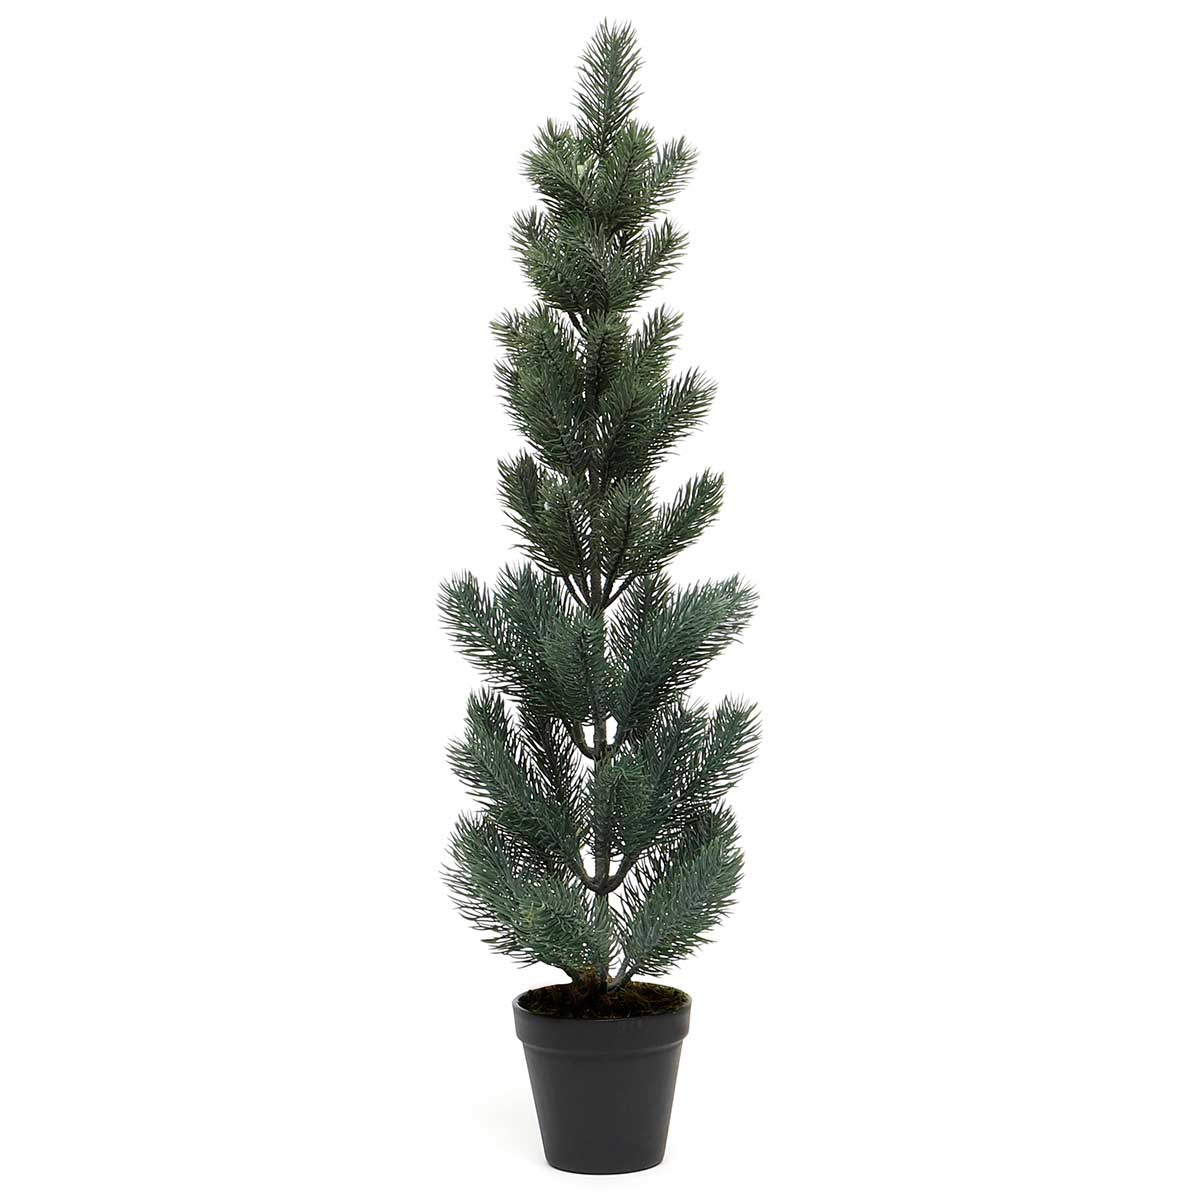 BLUE SPRUCE PINE TREE IN BLACK